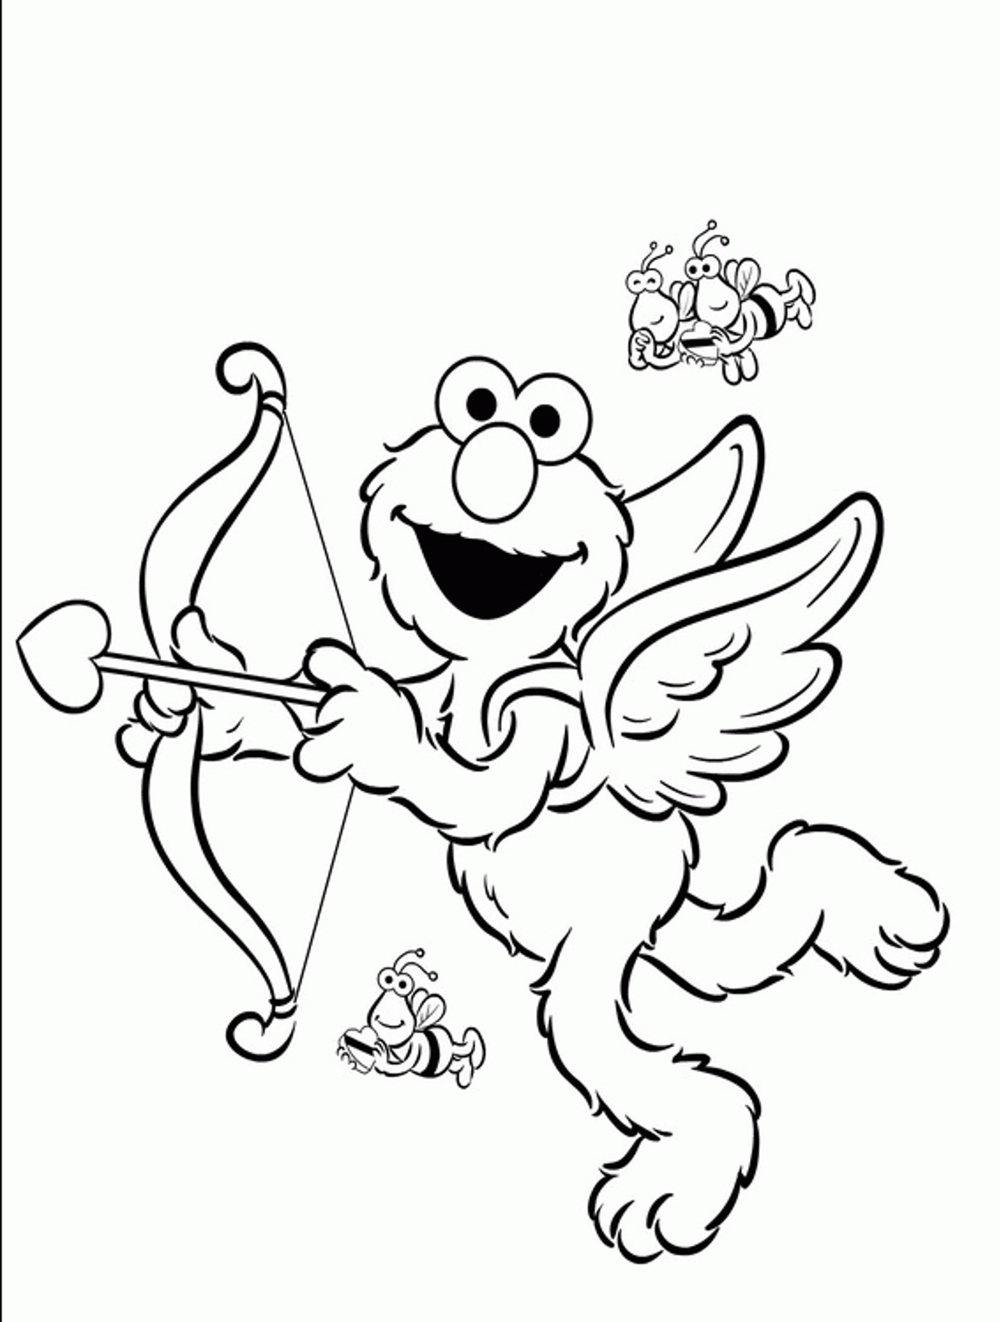 Print Amp Download Elmo Coloring Pages For Childrens Home